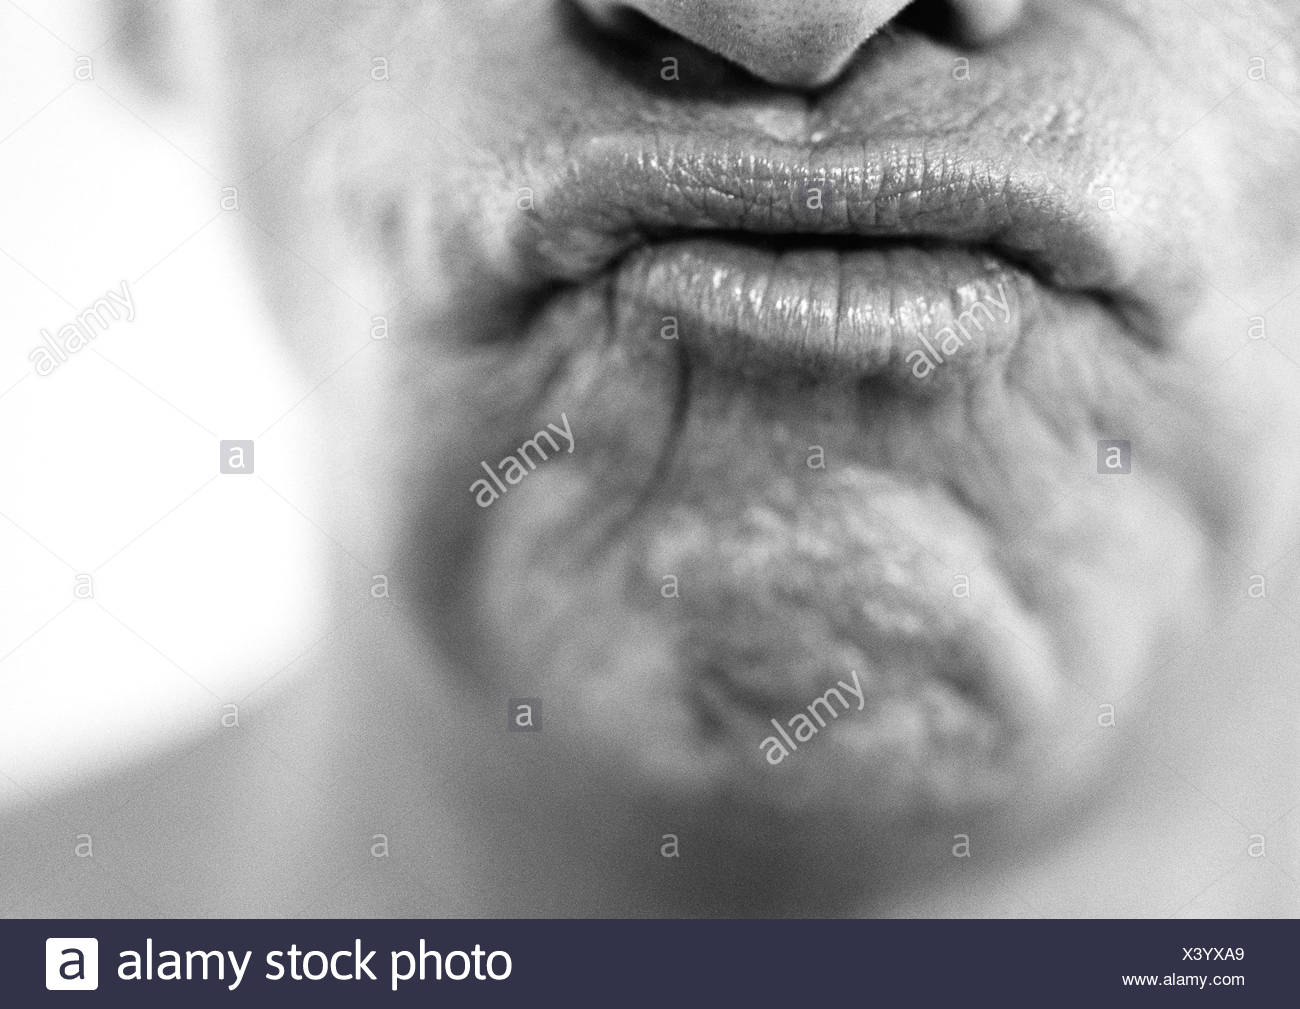 puckered lips stock photos & puckered lips stock images - alamy